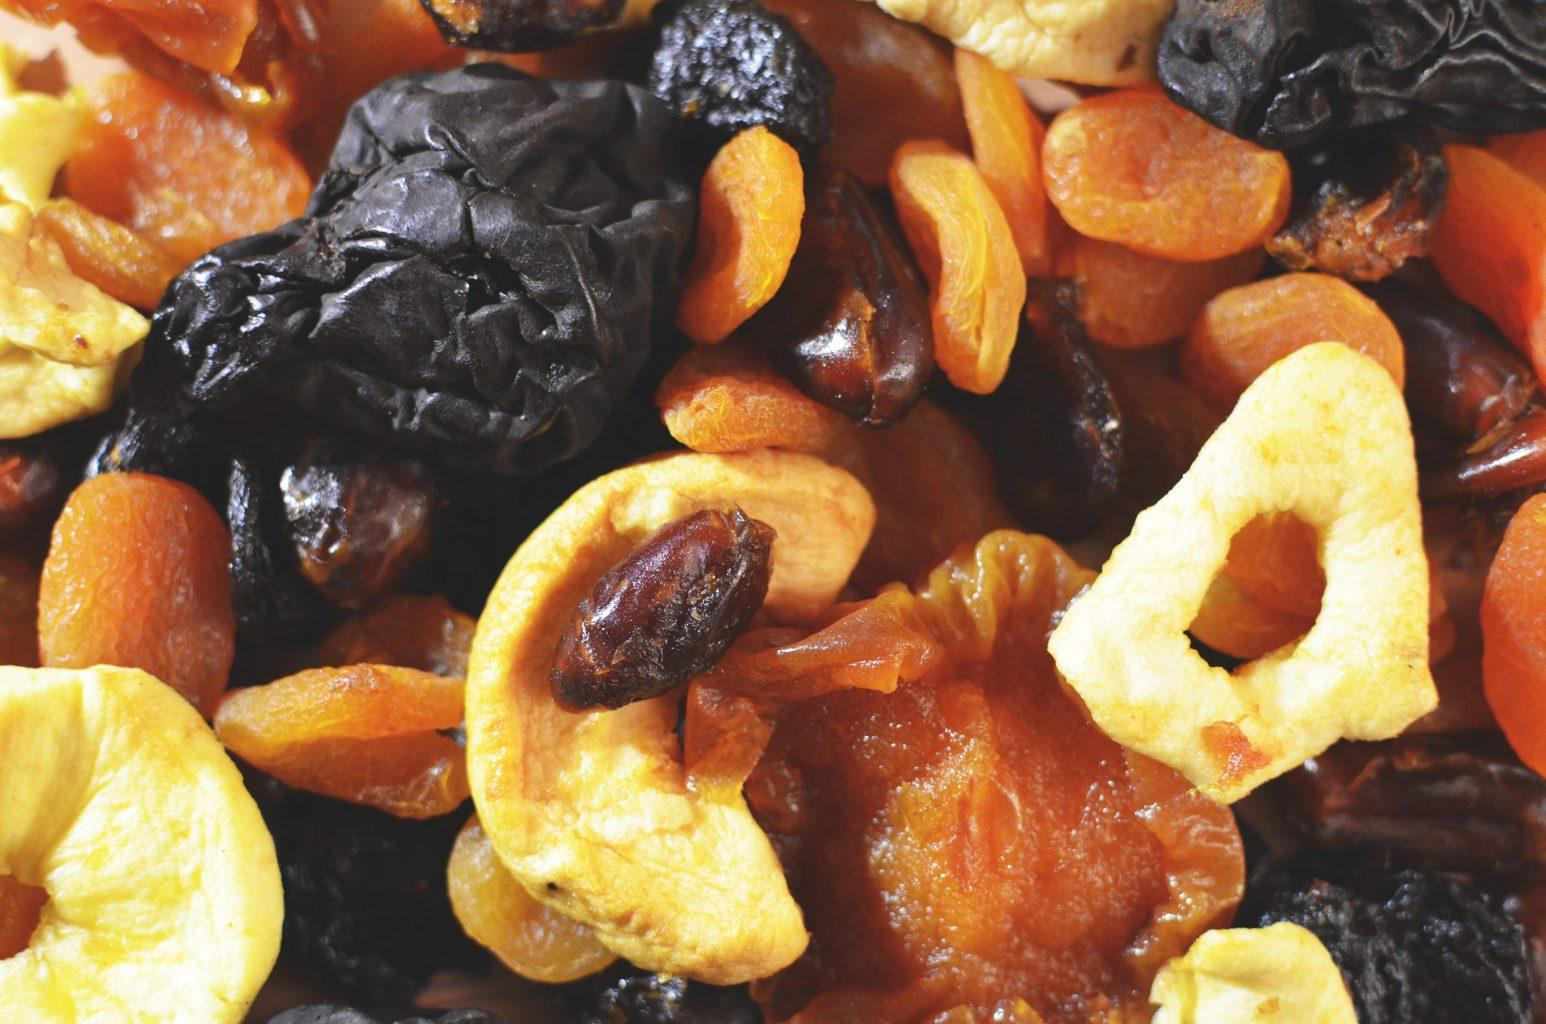 dry fruit as a gift